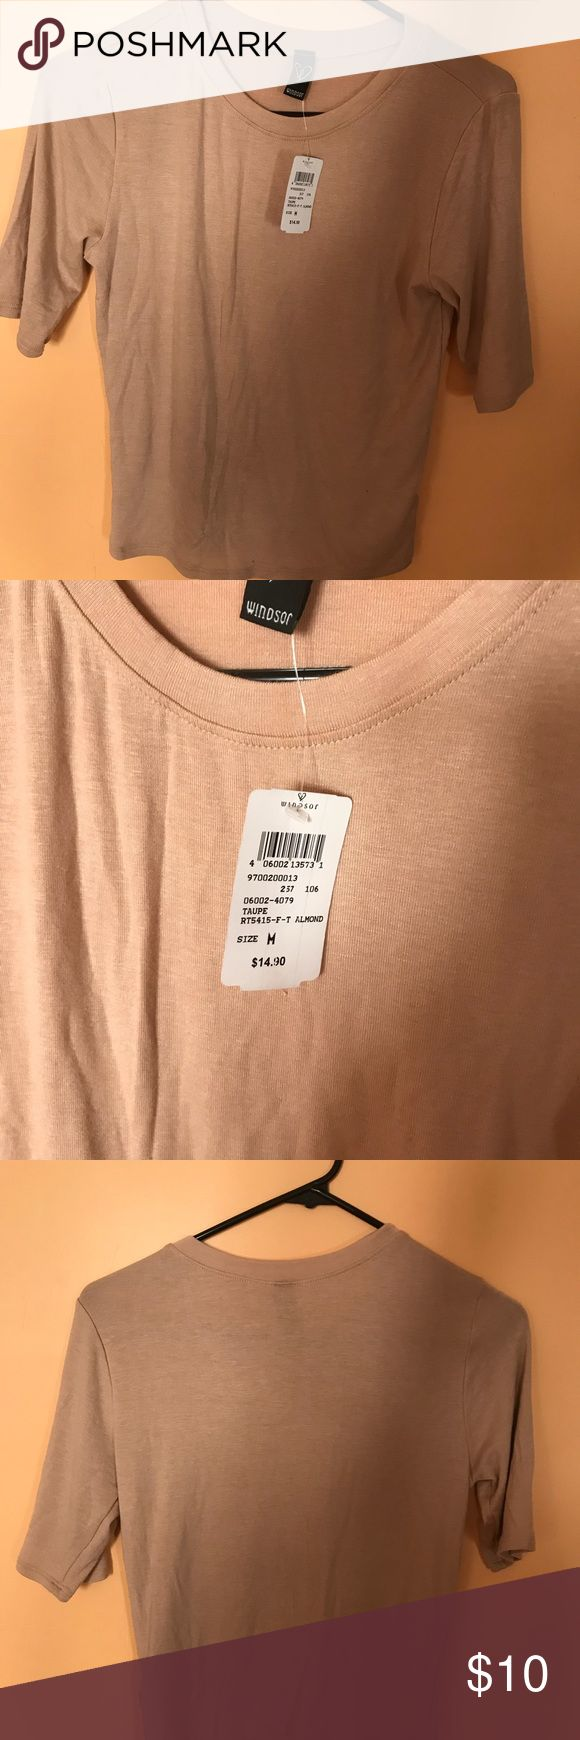 Windsor T-Shirt Beige, short sleeve t-shirt from Windsor. Brand new ✨ it's very fitted and curve hugging. An overall good basic. Windsor Tops Tees - Short Sleeve